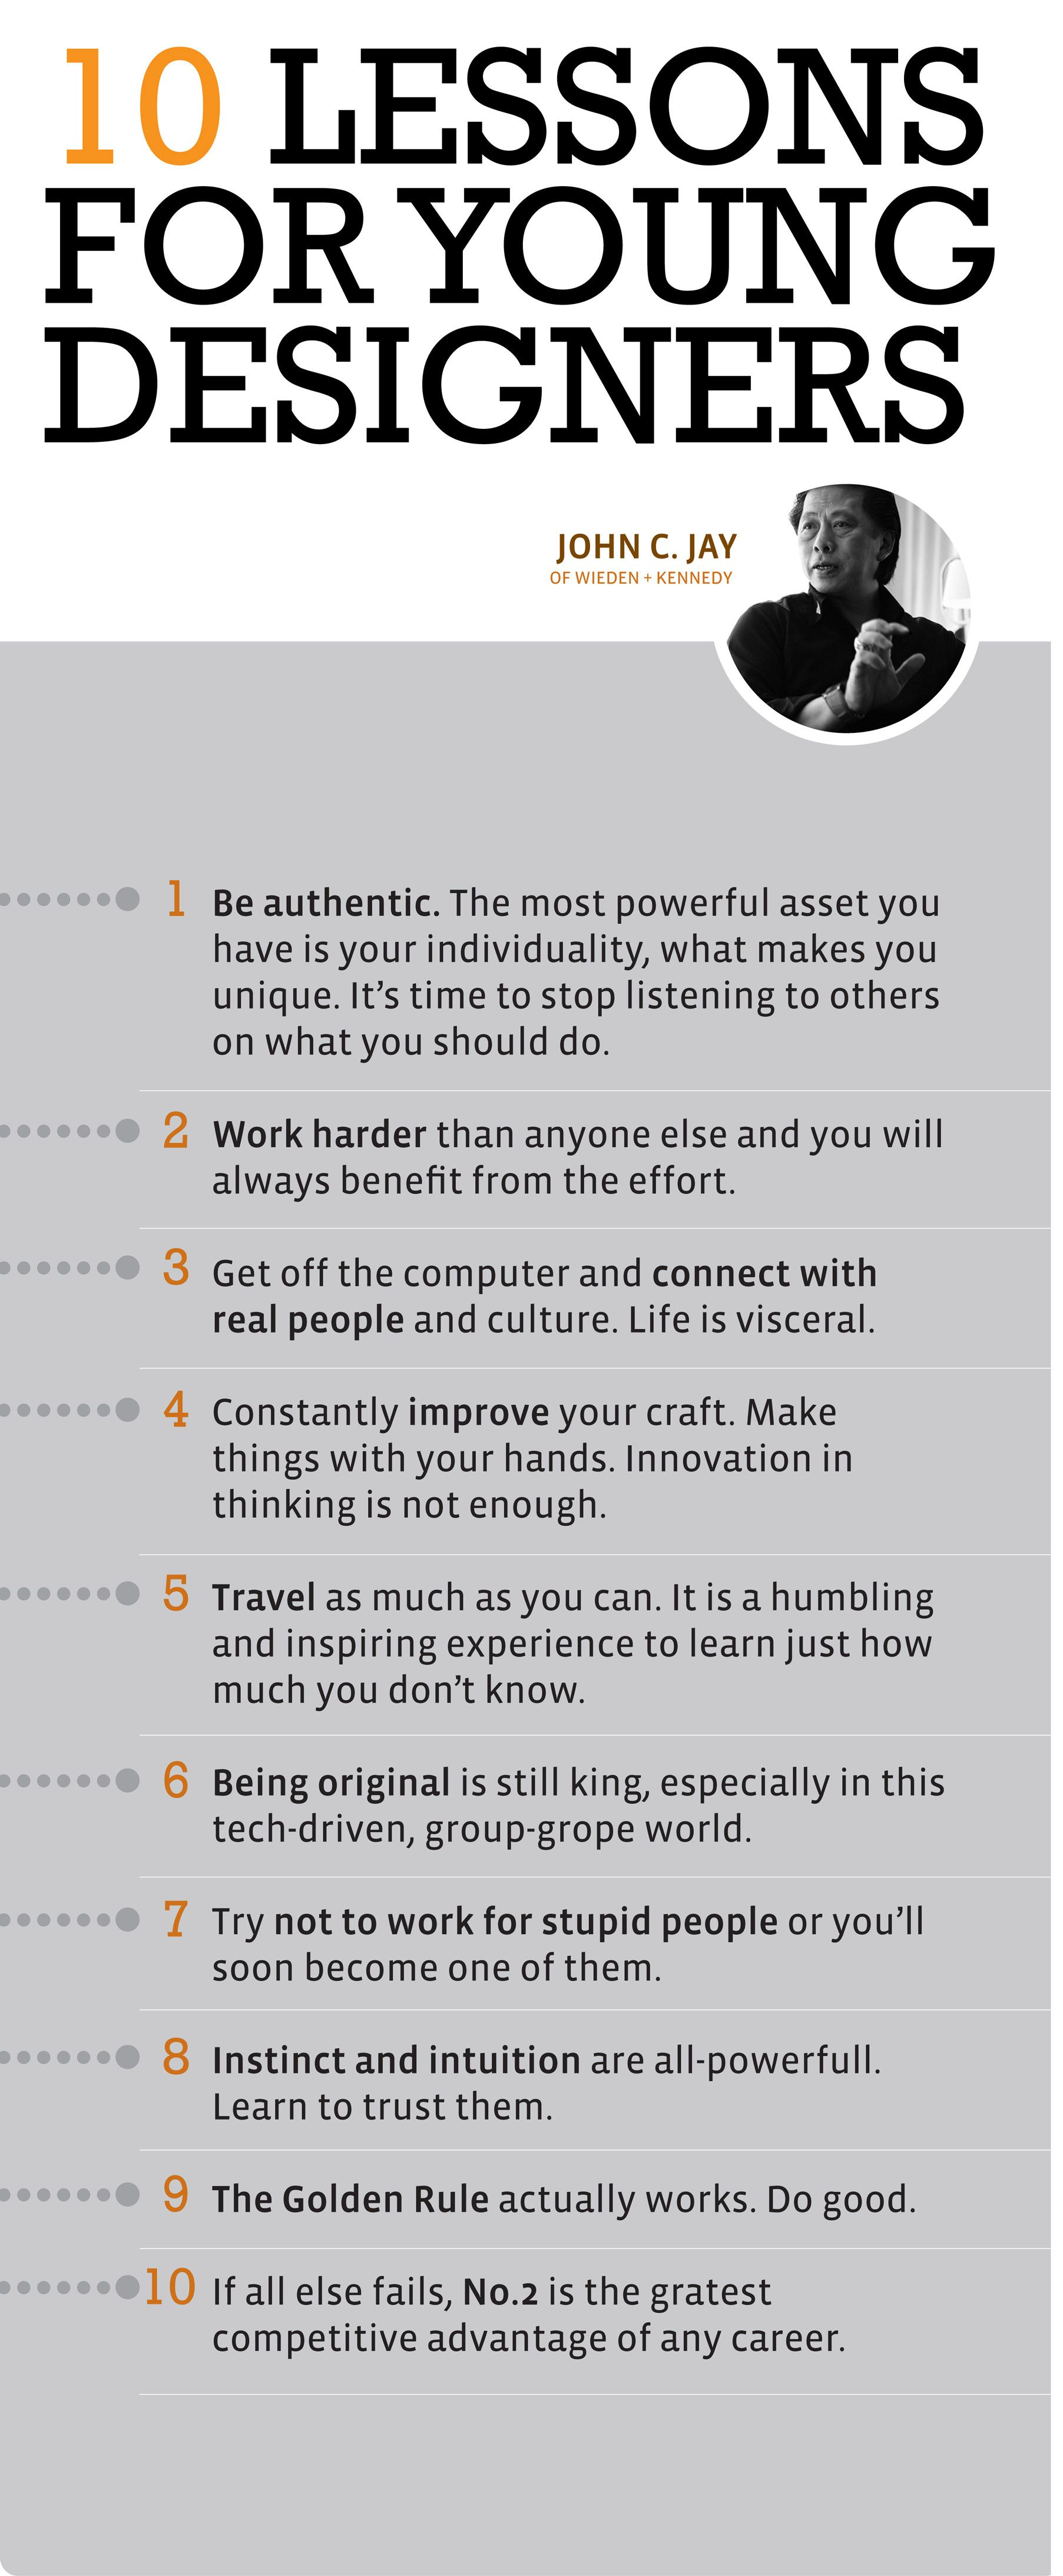 John Jays 10 Lessons For Young Designers